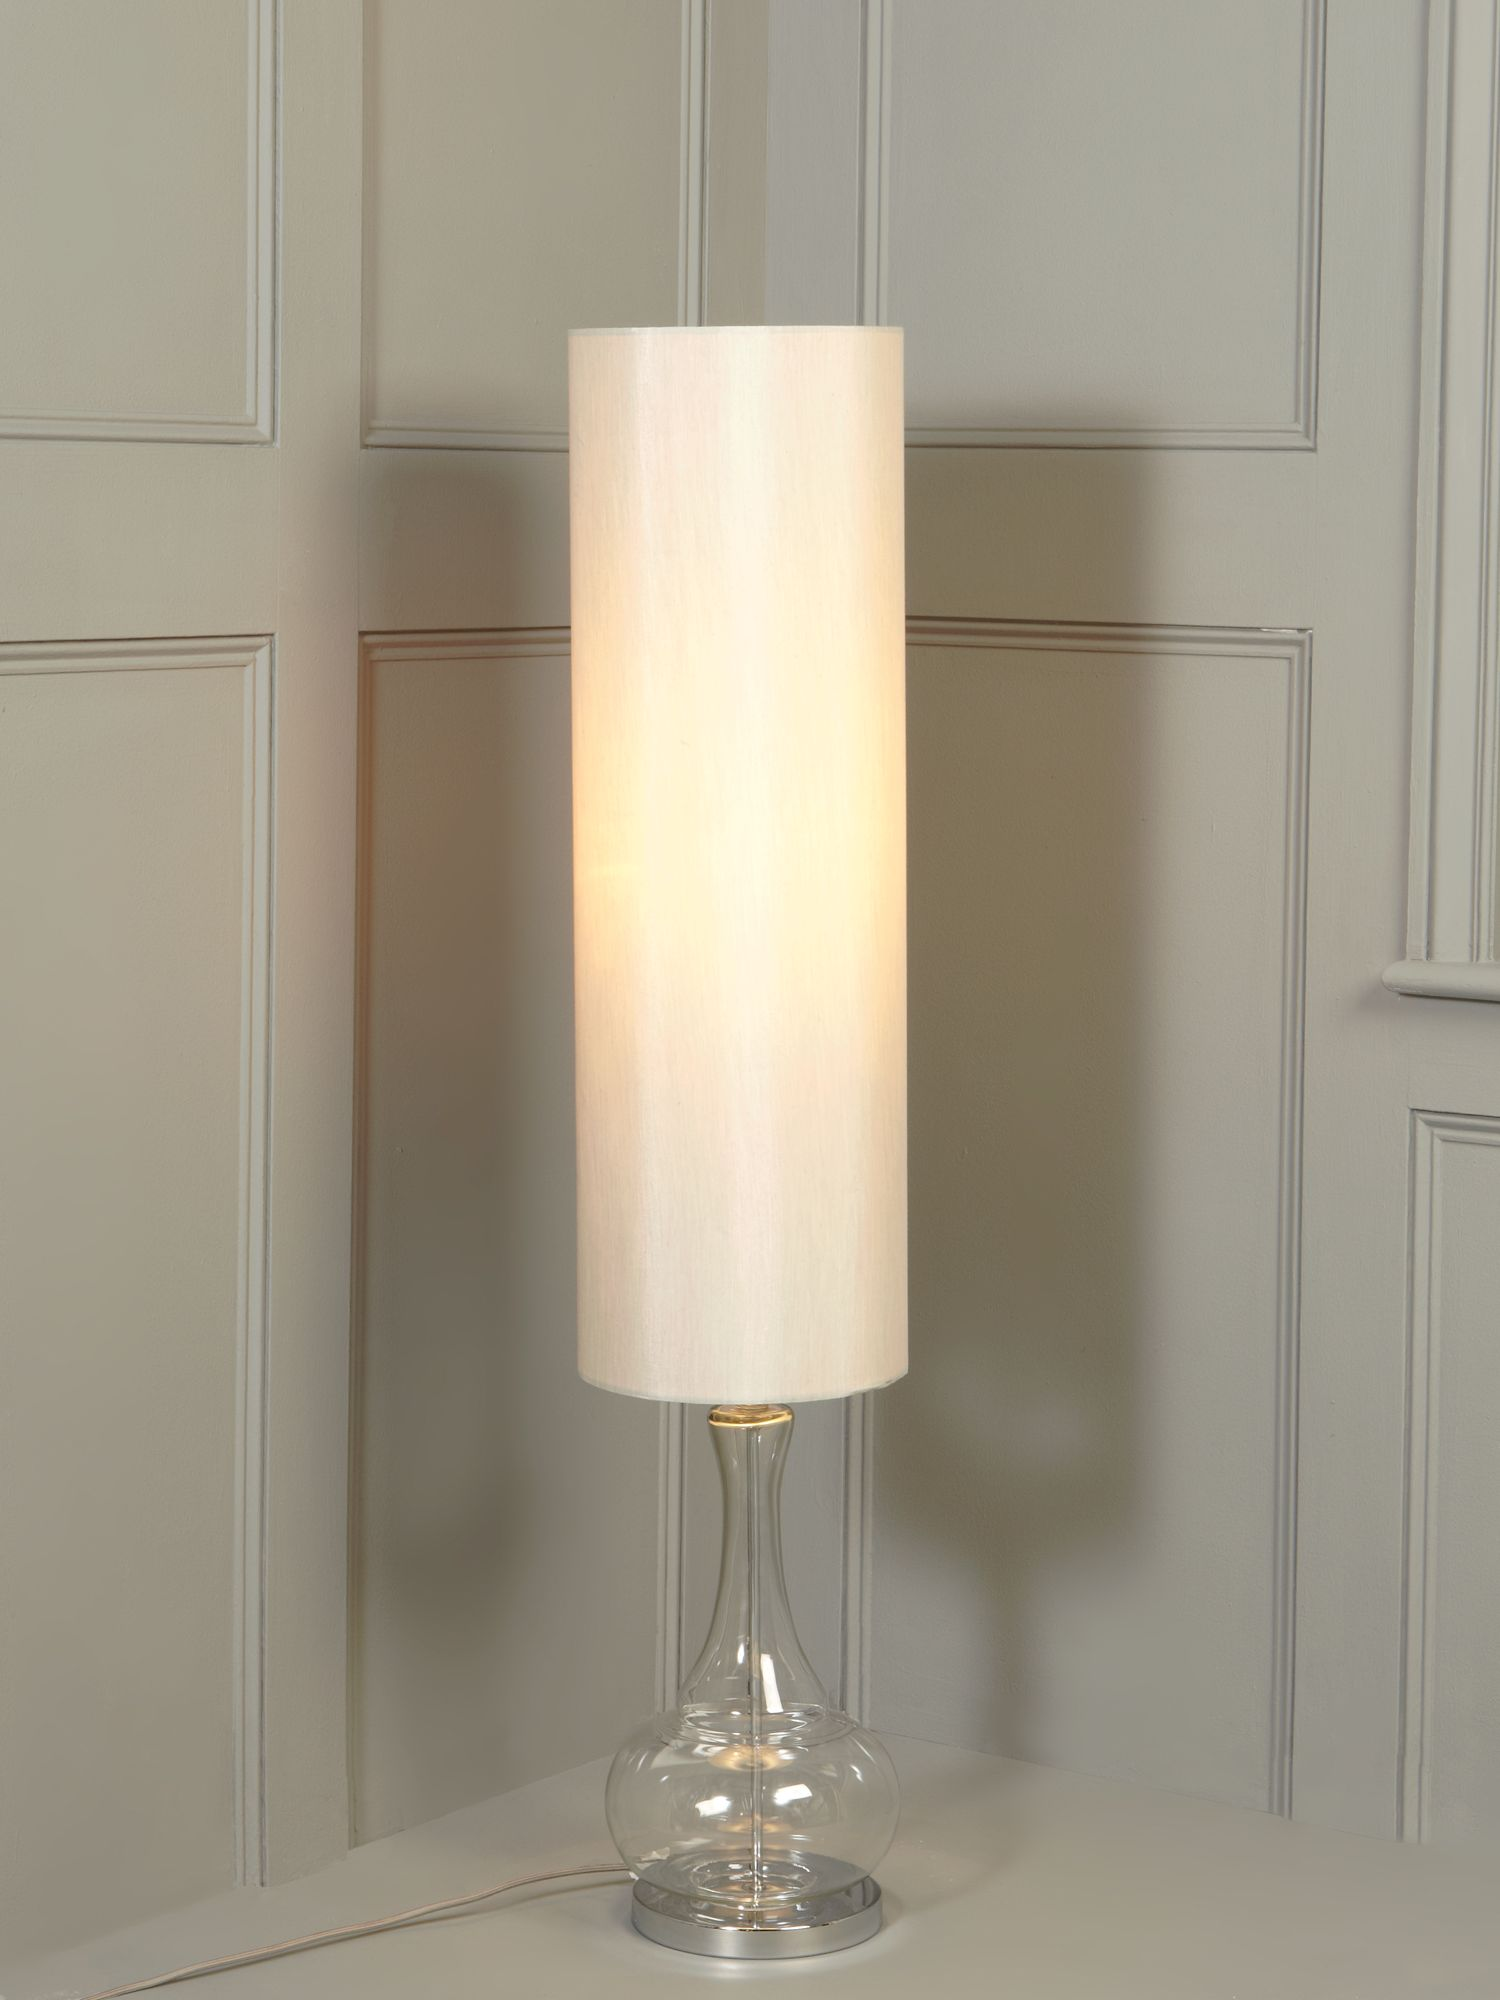 Aurelia glass base floor lamp